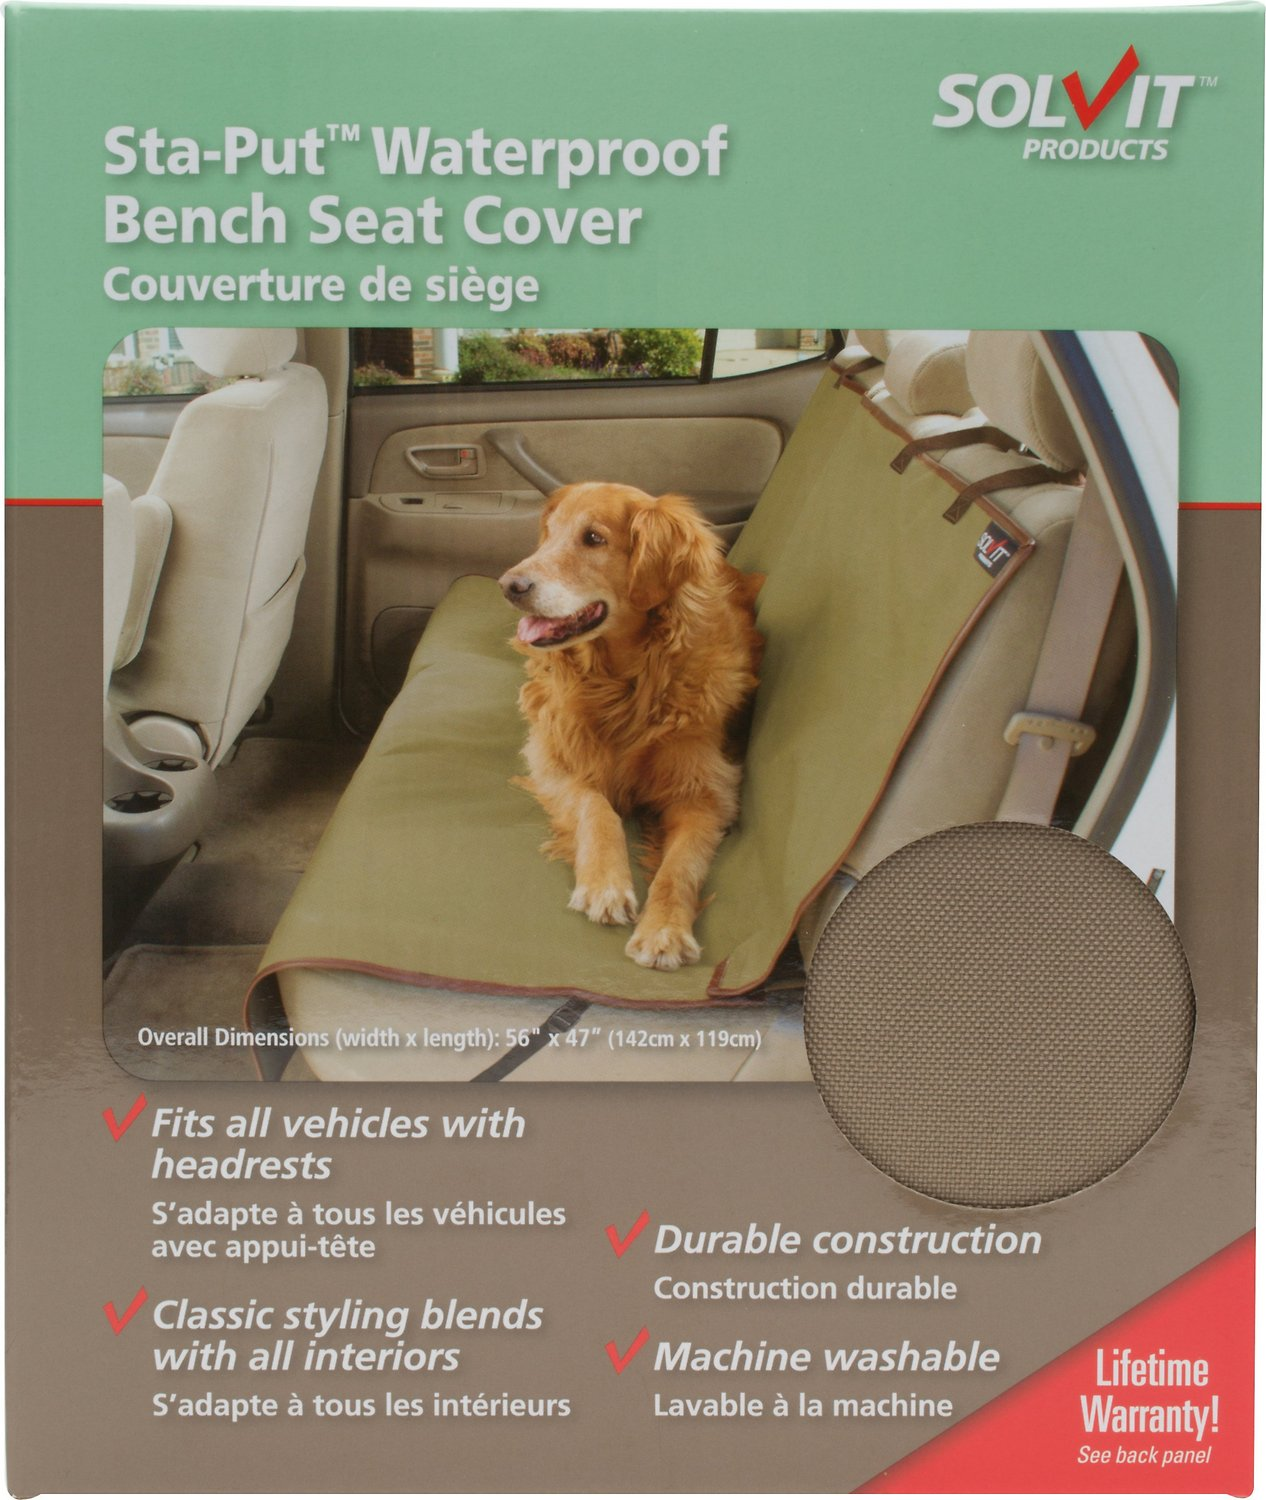 Stupendous Solvit Waterproof Sta Put Bench Seat Cover Ibusinesslaw Wood Chair Design Ideas Ibusinesslaworg